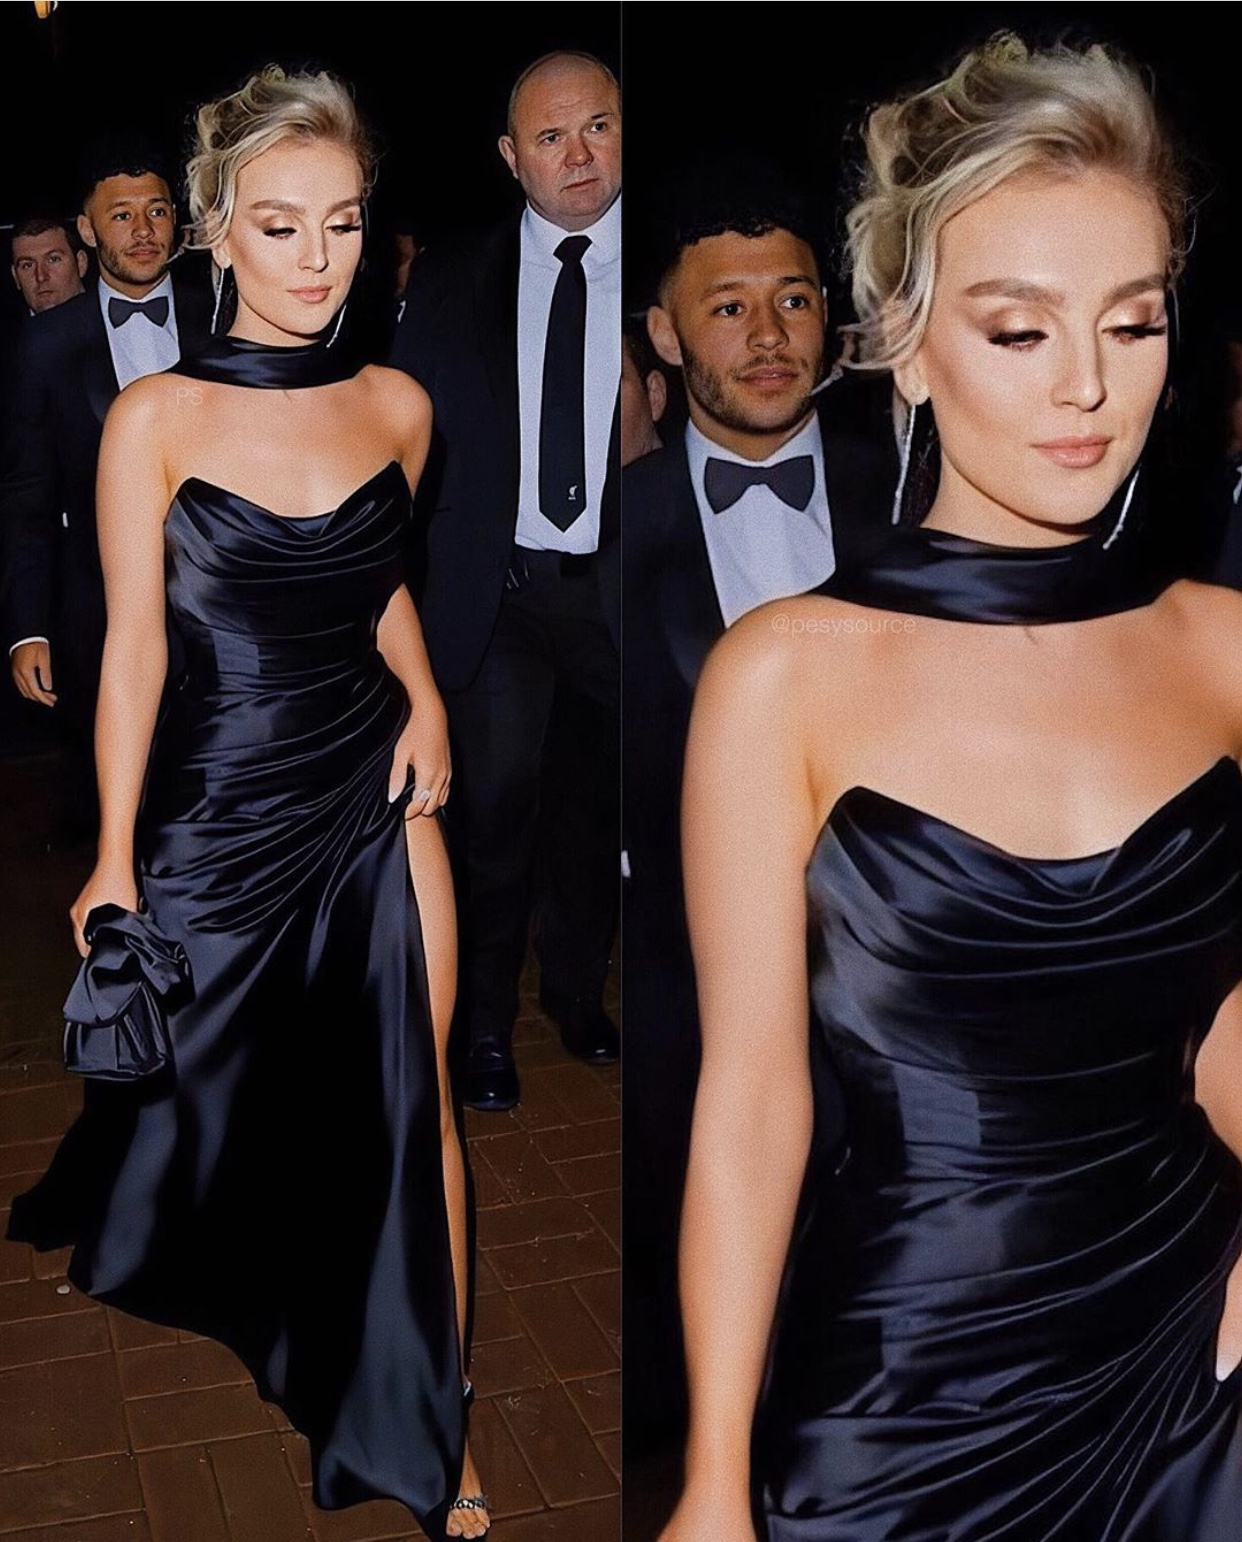 Little Mix Perrie Edwards - Black Dress - Charity Ball in Manchester